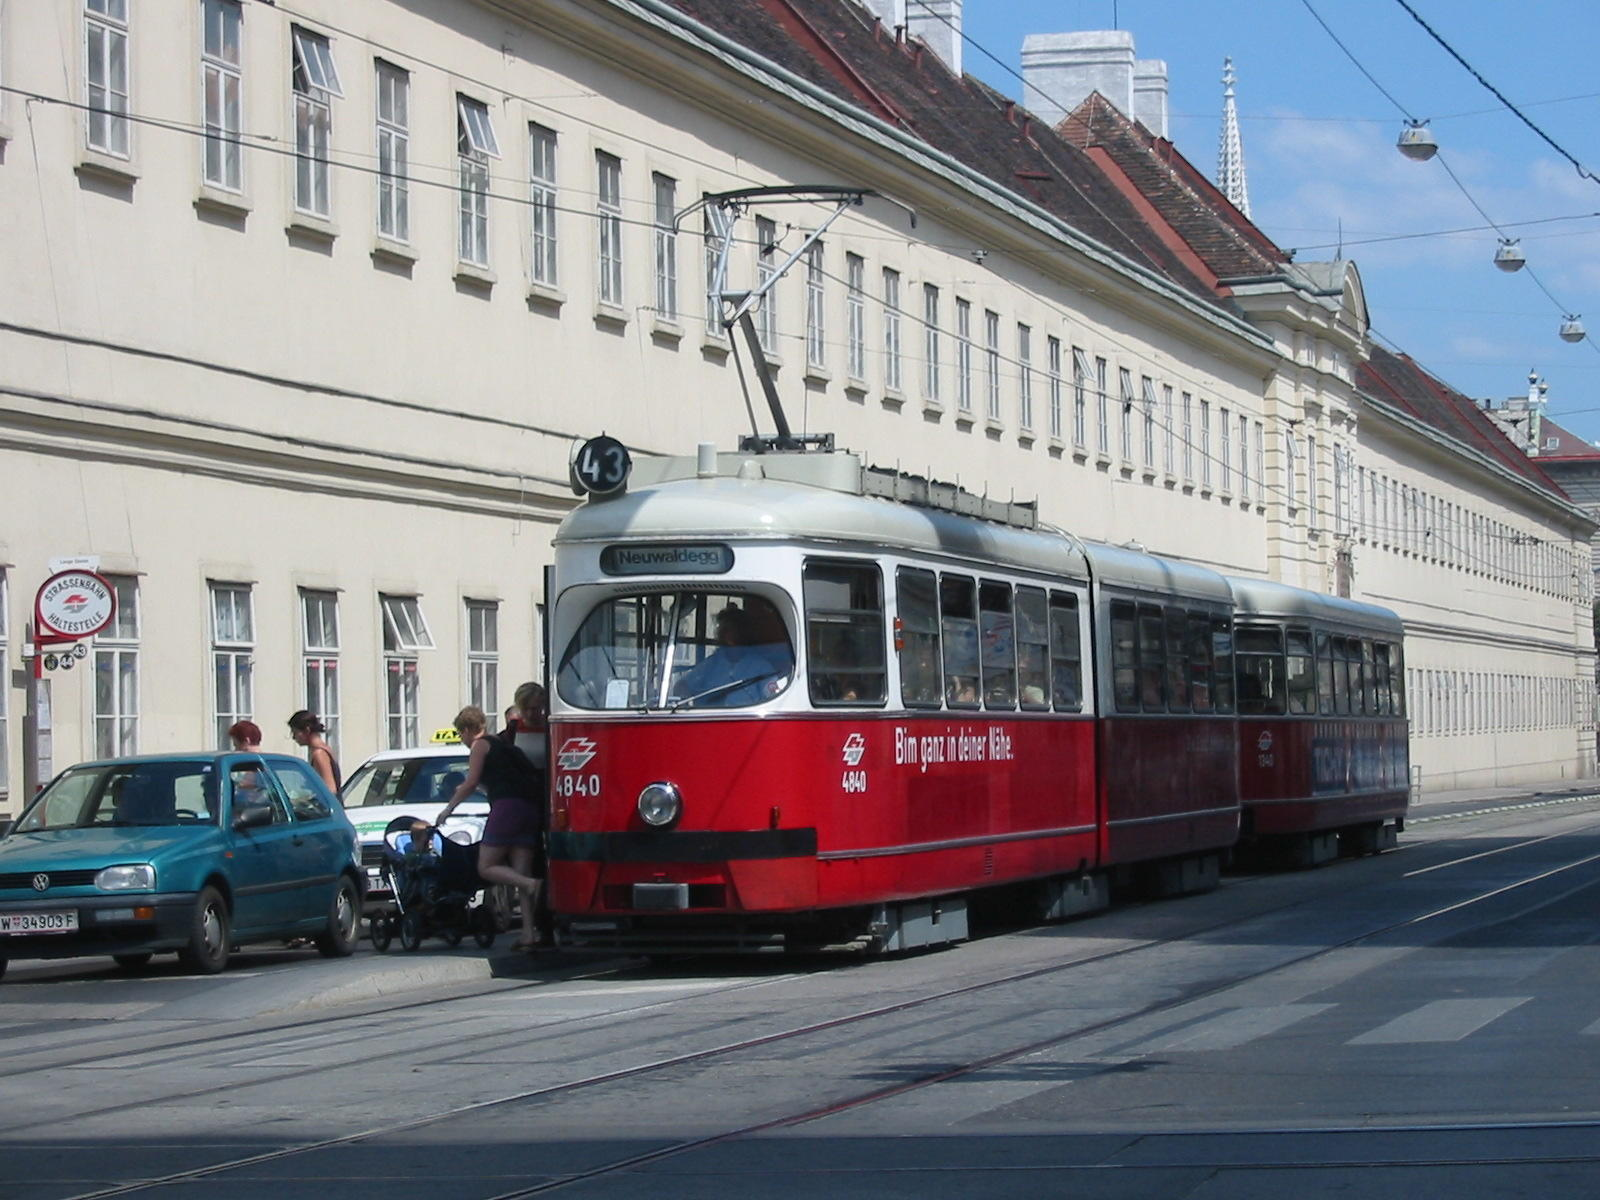 Buses and Trams